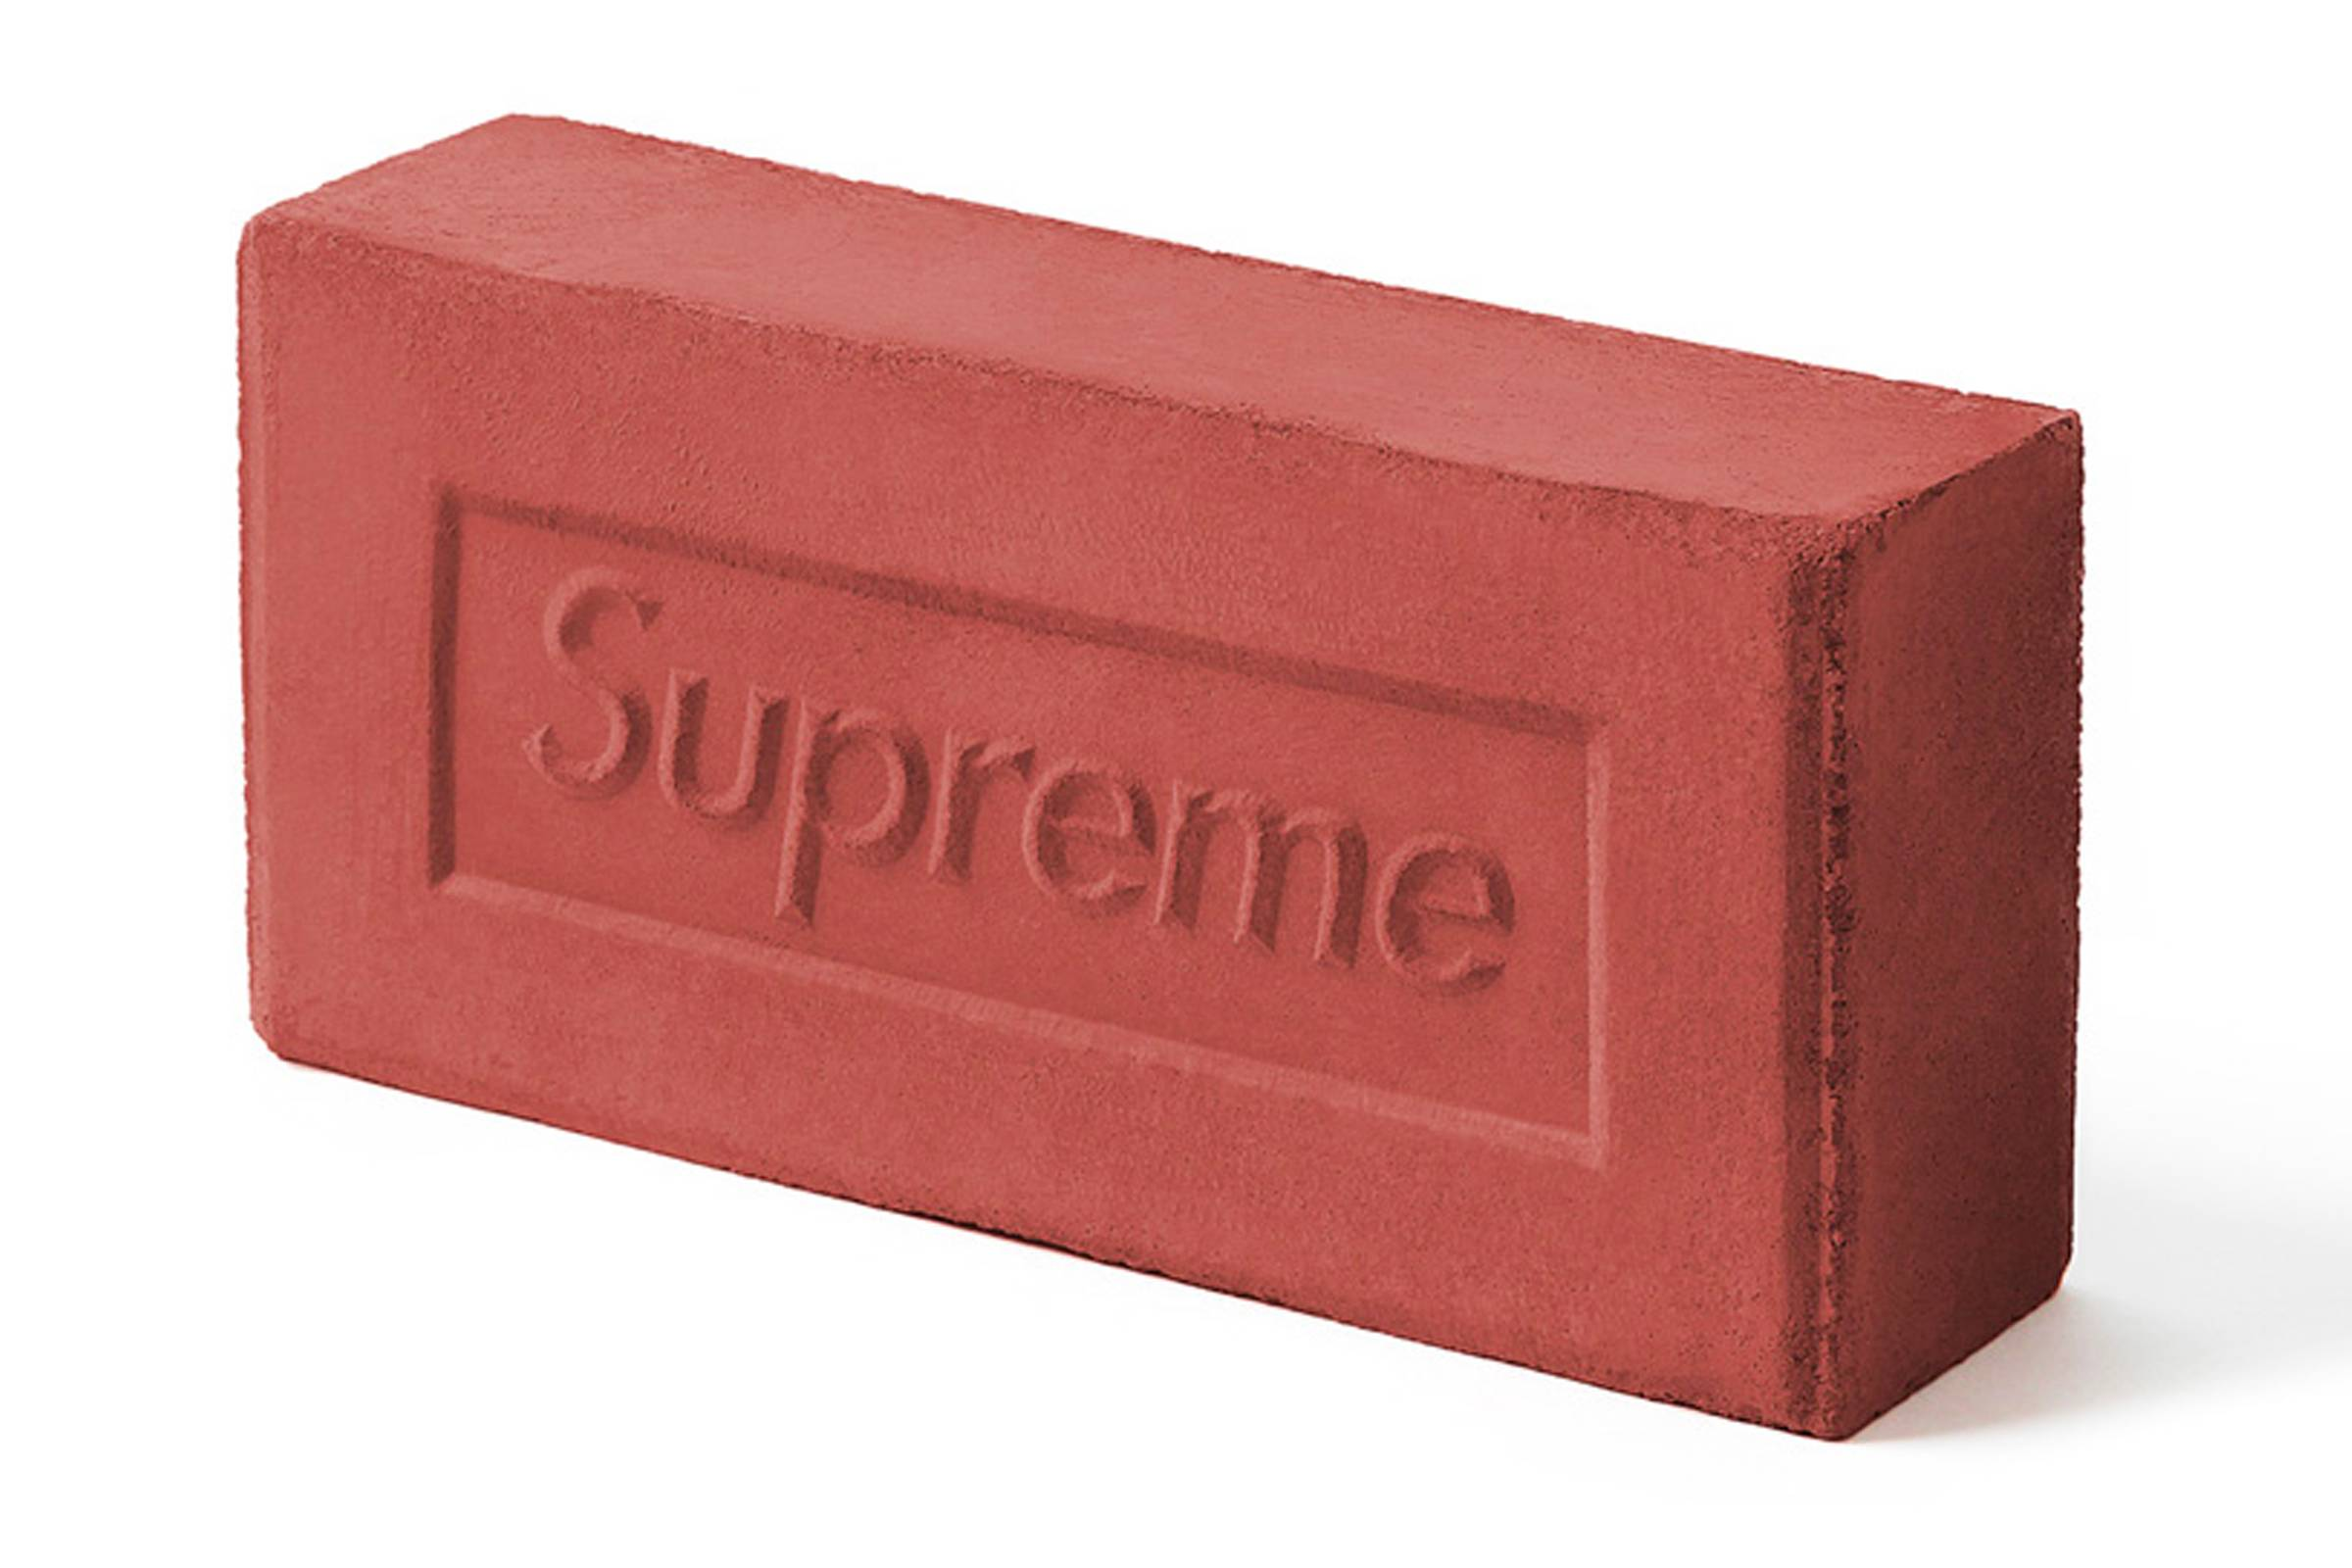 The Rebellious Nature Of Supreme S Brand Would Lead One To Think That This Accessory Was Symbolic For Something Like Throwing A Brick Through Window